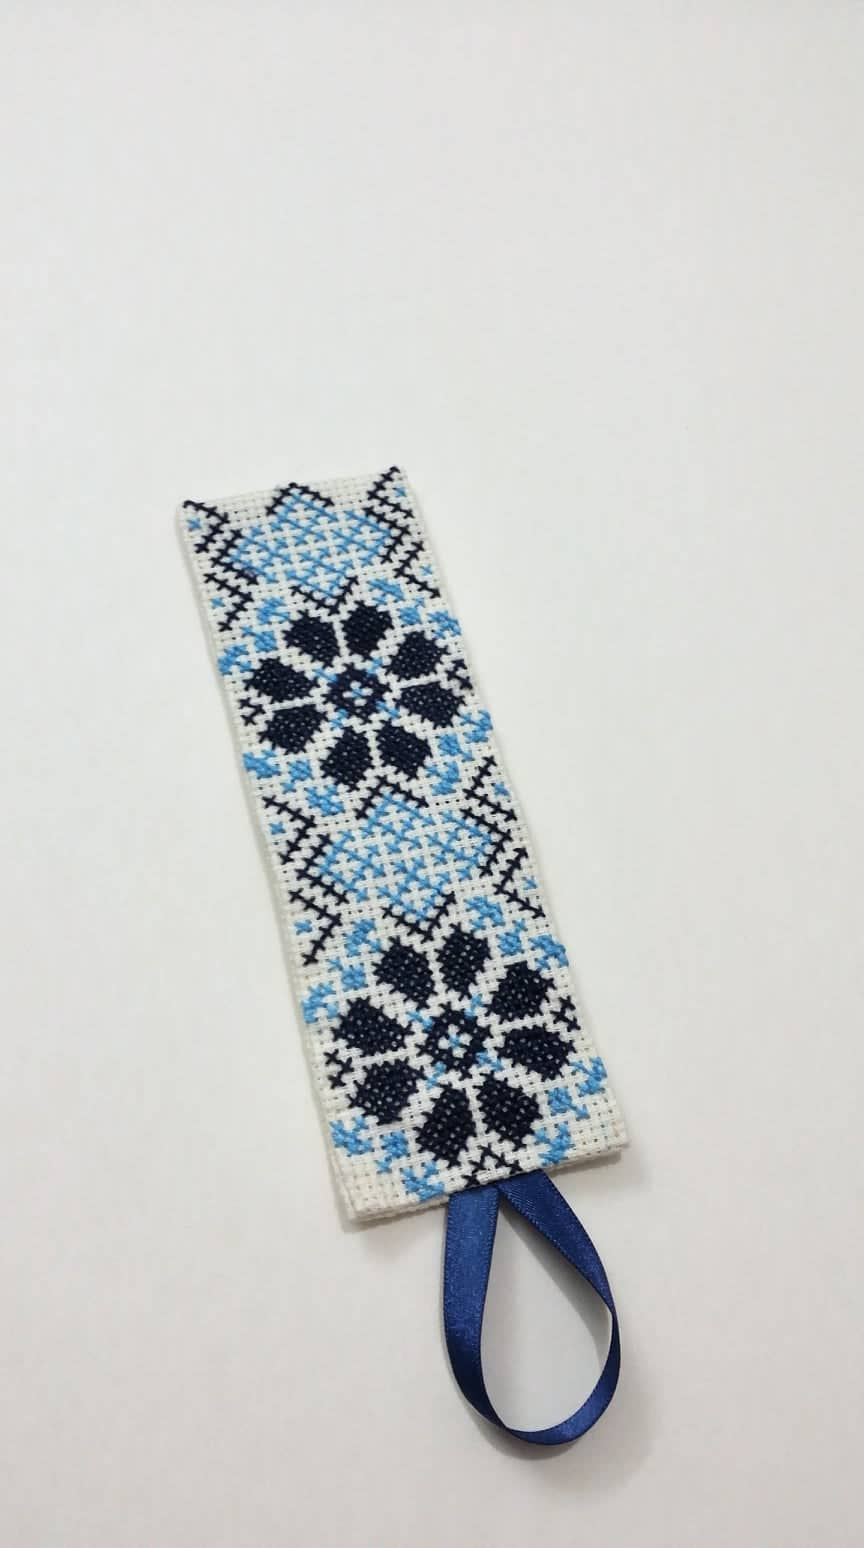 White bookmark with blue and black embroidery - Falastini Brand